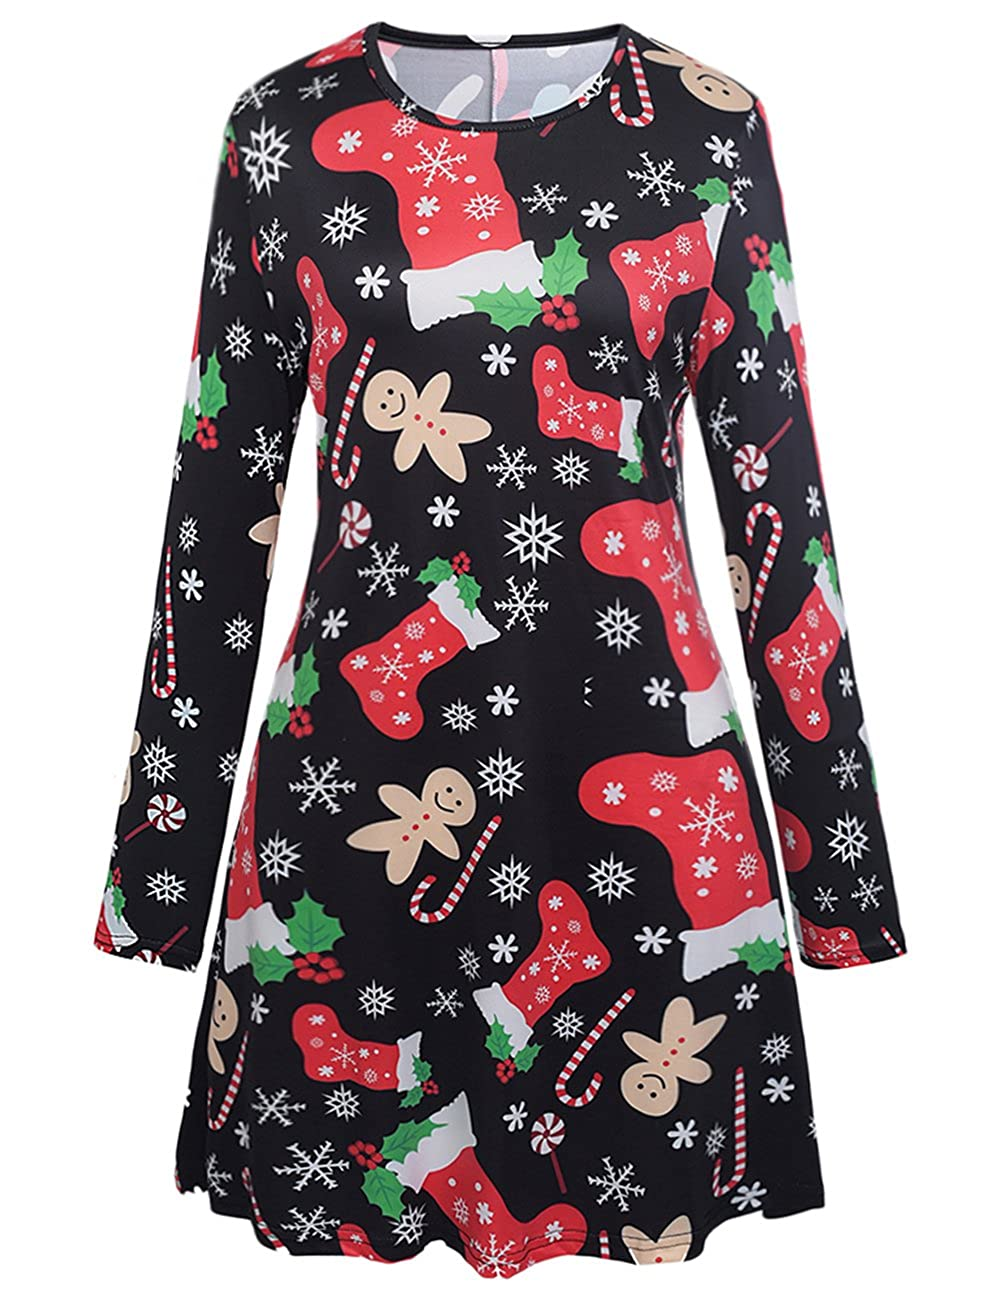 Ruiyige Women Girl Women's Christmas Santa Claus Print Pullover Flared A Line Dress Xmas-HatPrint